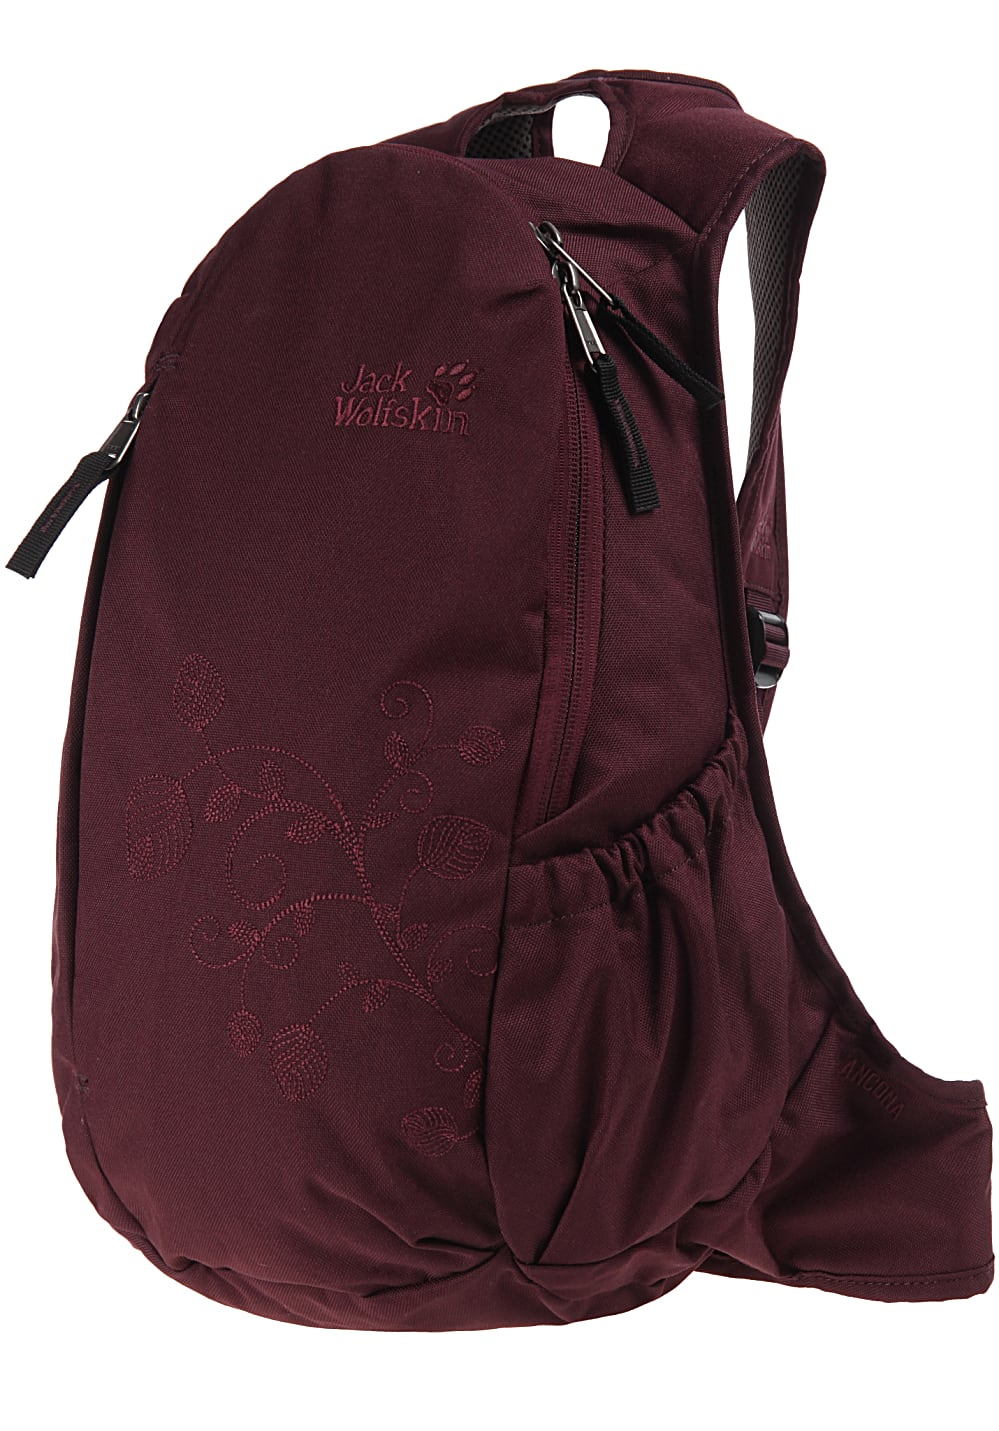 bad8ec2e6ca Jack Wolfskin Ancona 14L - Backpack for Women - Red - Planet Sports